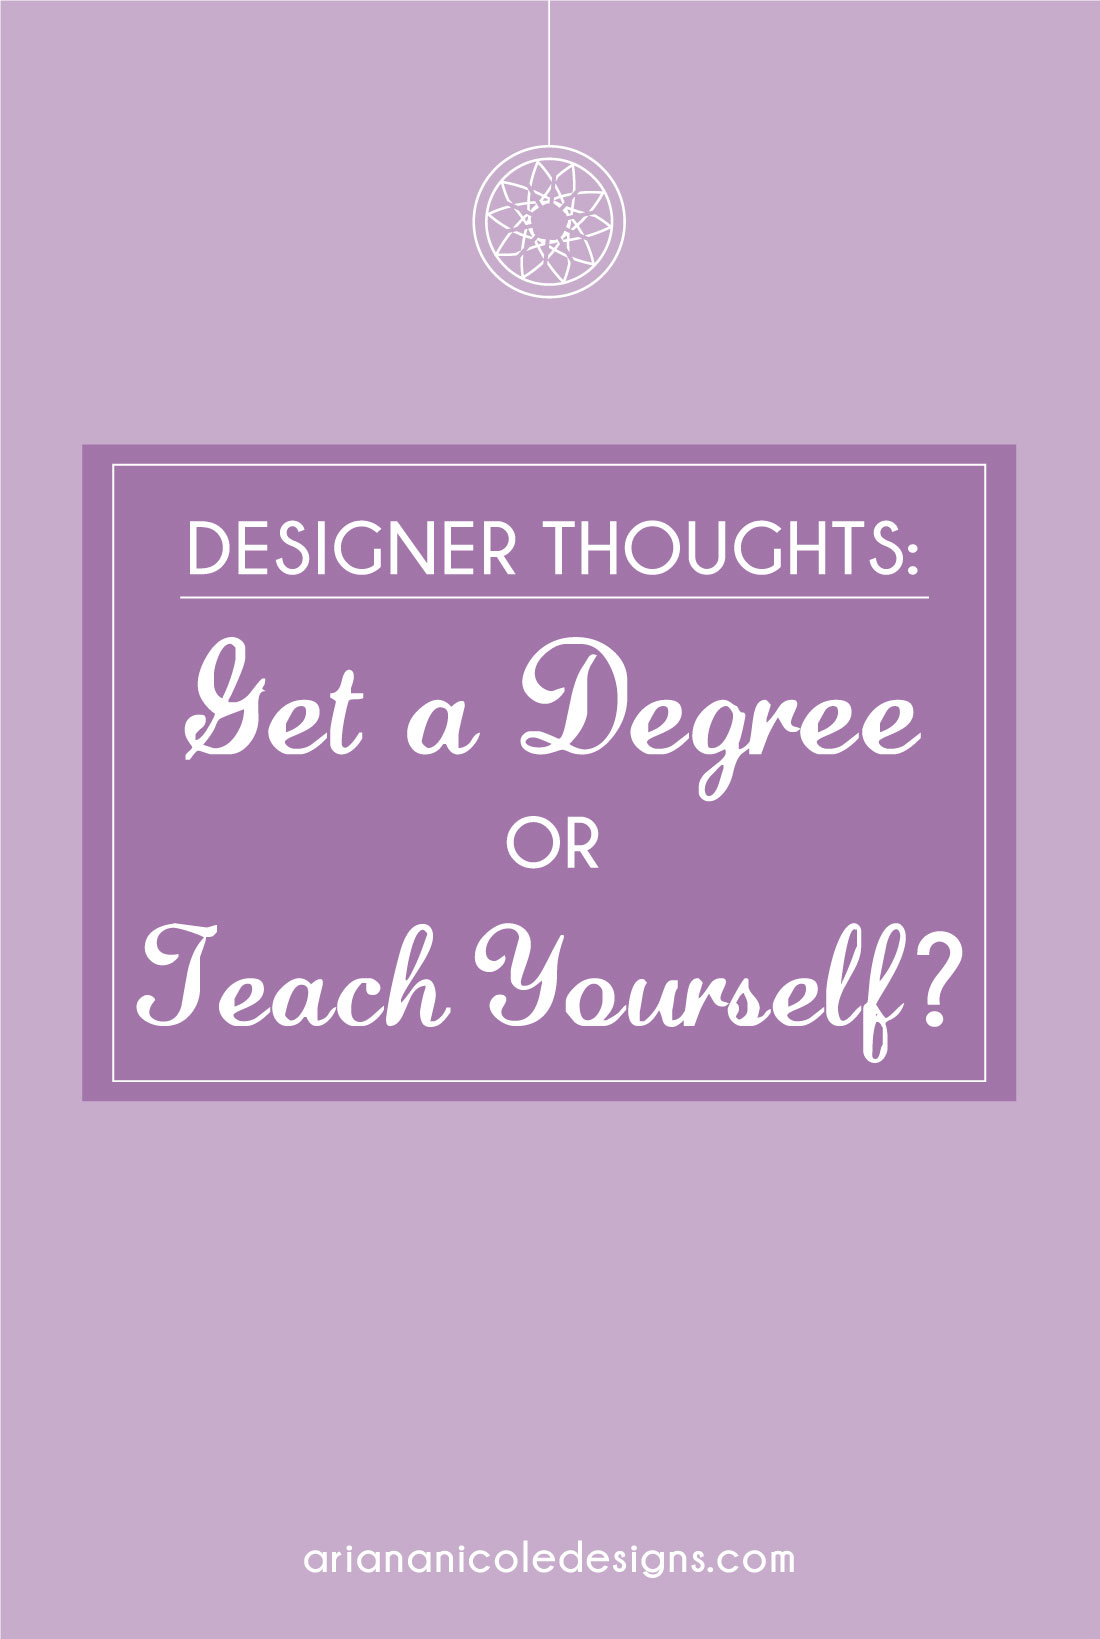 Designer_Thoughts_Get_A_Degree_Or_Teach_Yourself-1100